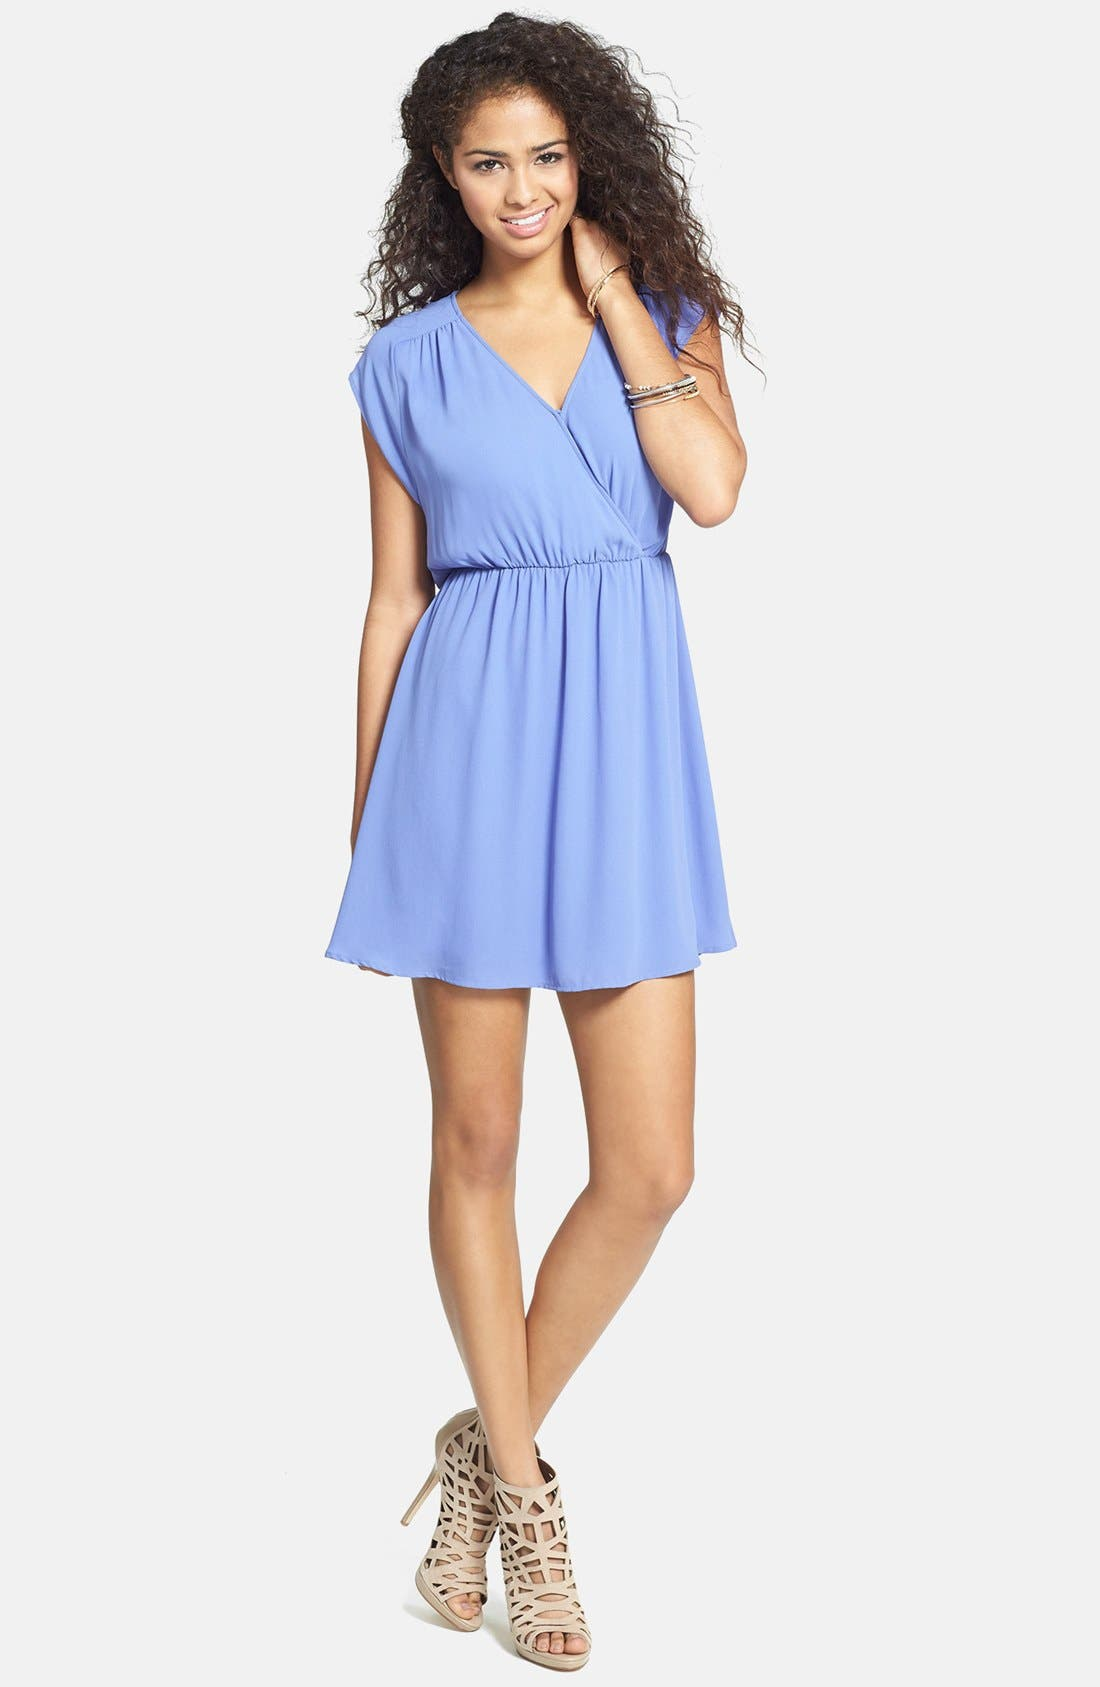 Alternate Image 1 Selected - Lush 'Katie' Surplice Chiffon Skater Dress